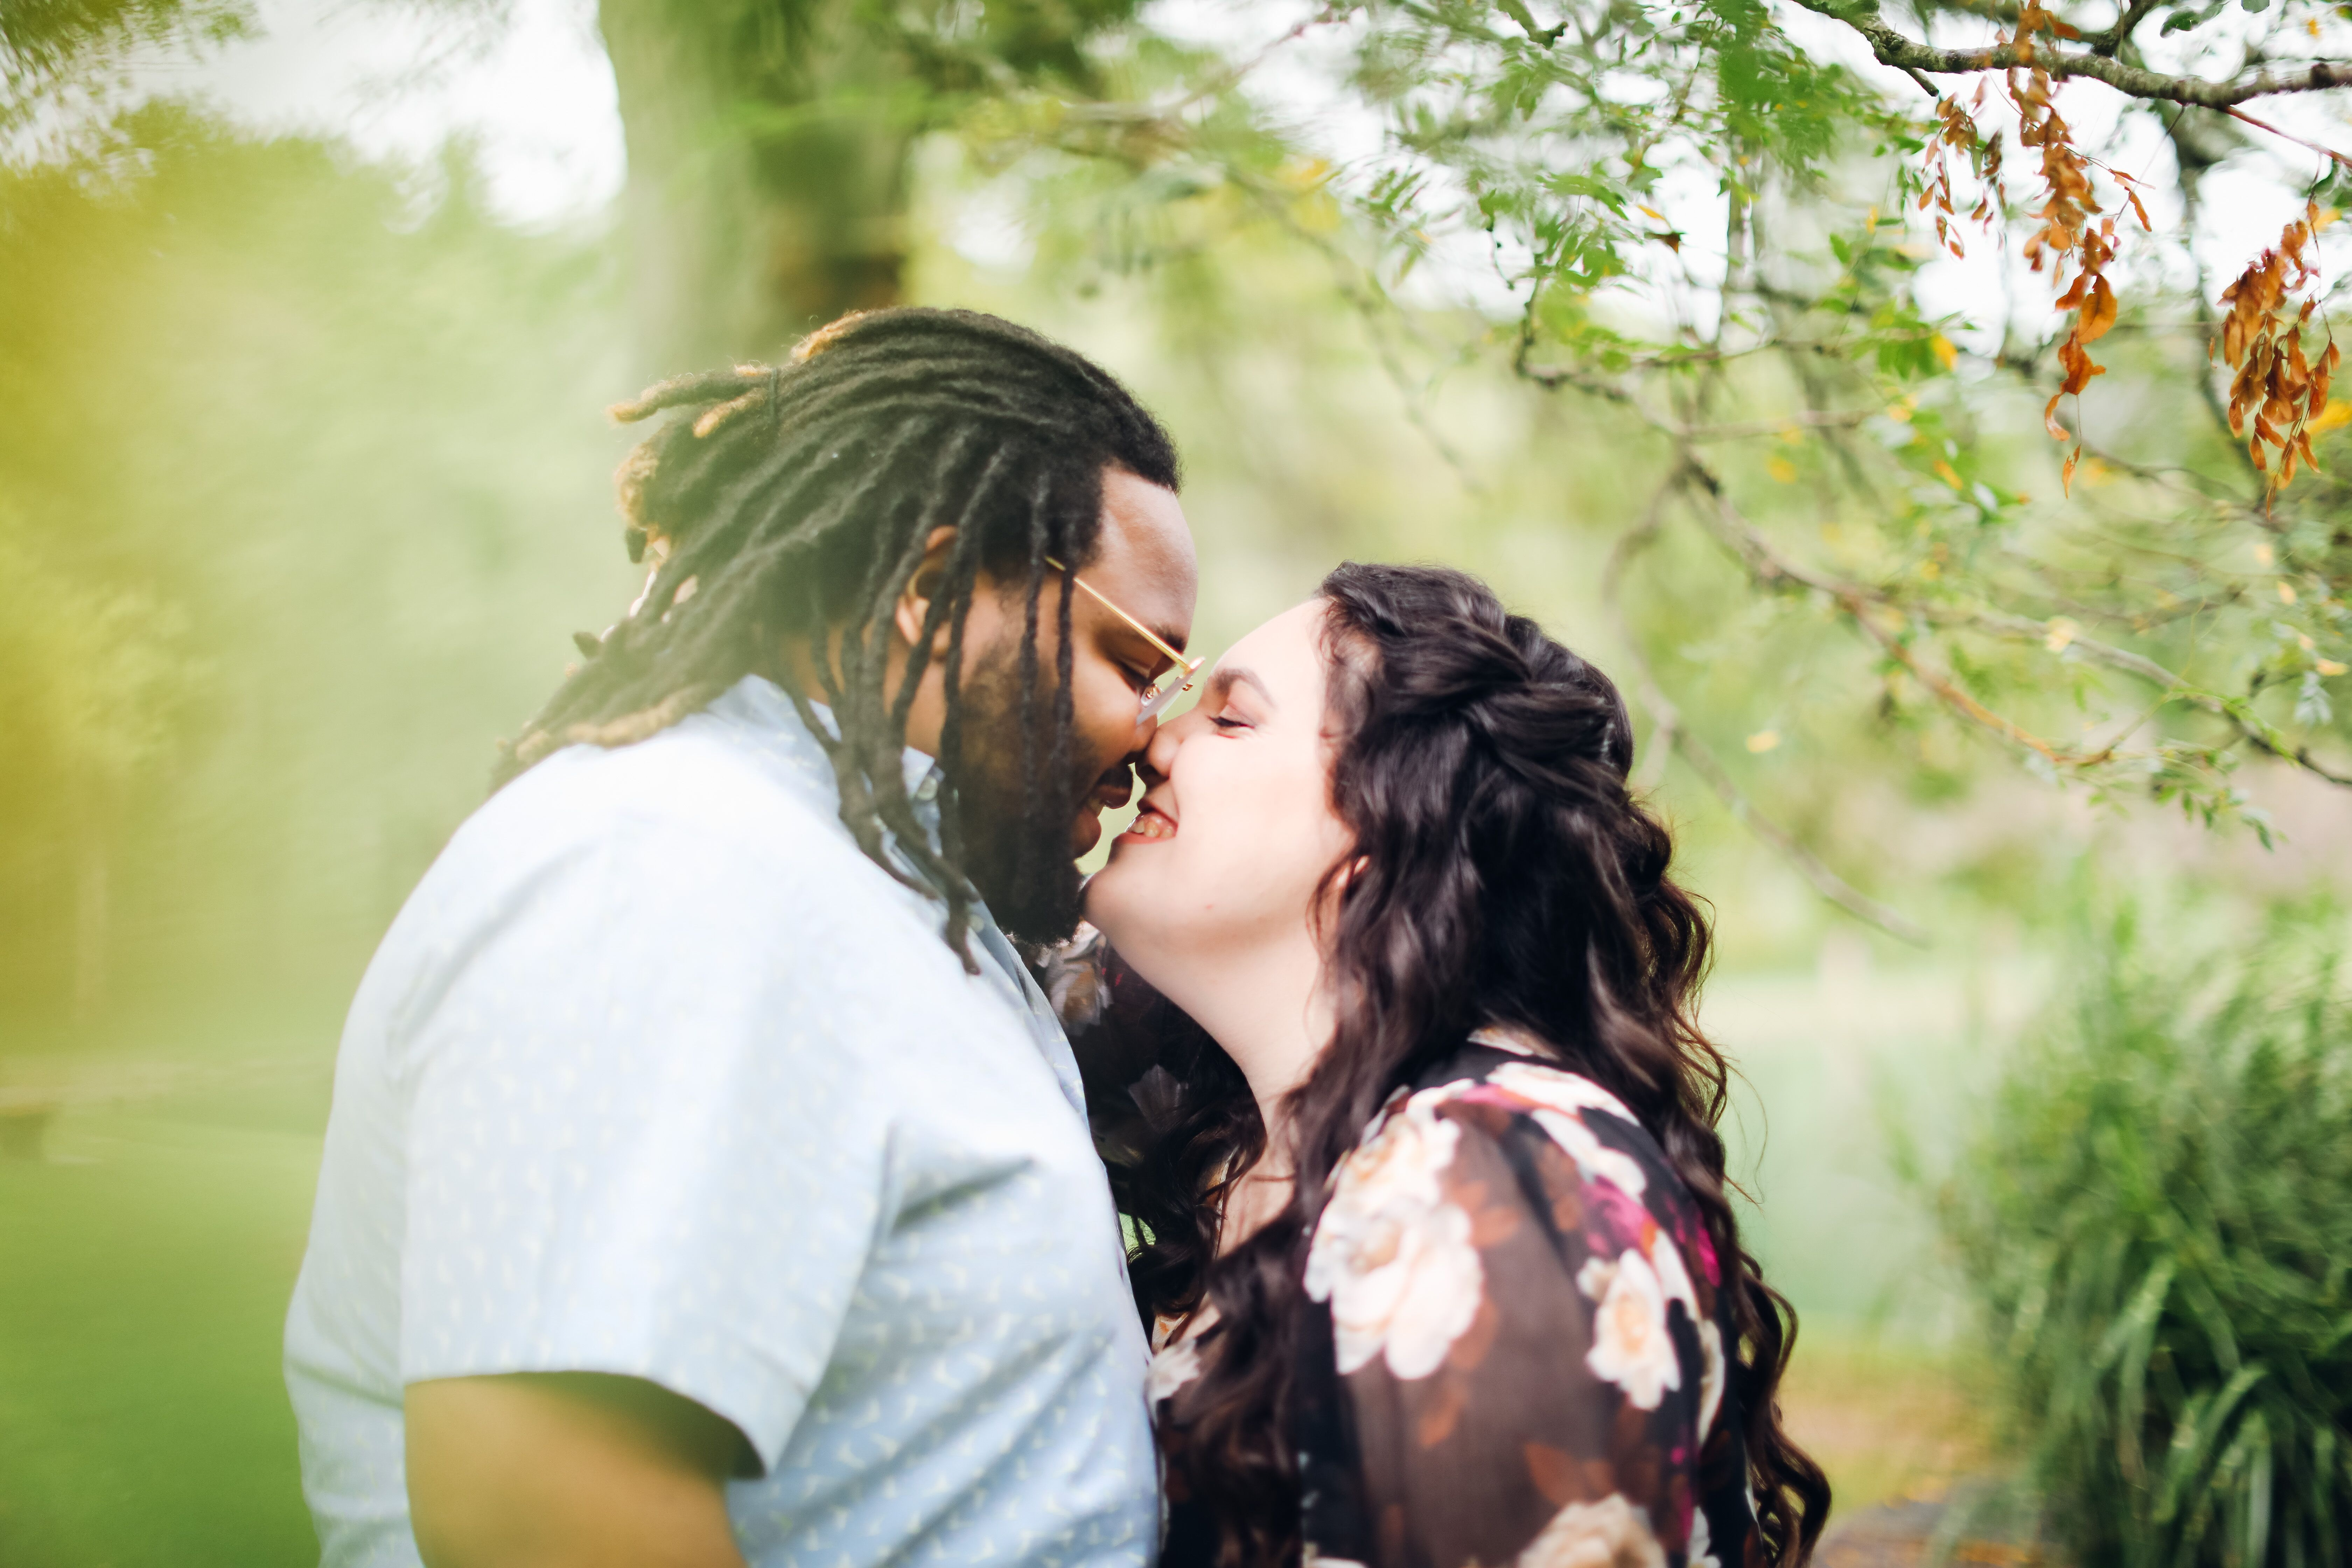 Image 1 of Brenna and Dondre